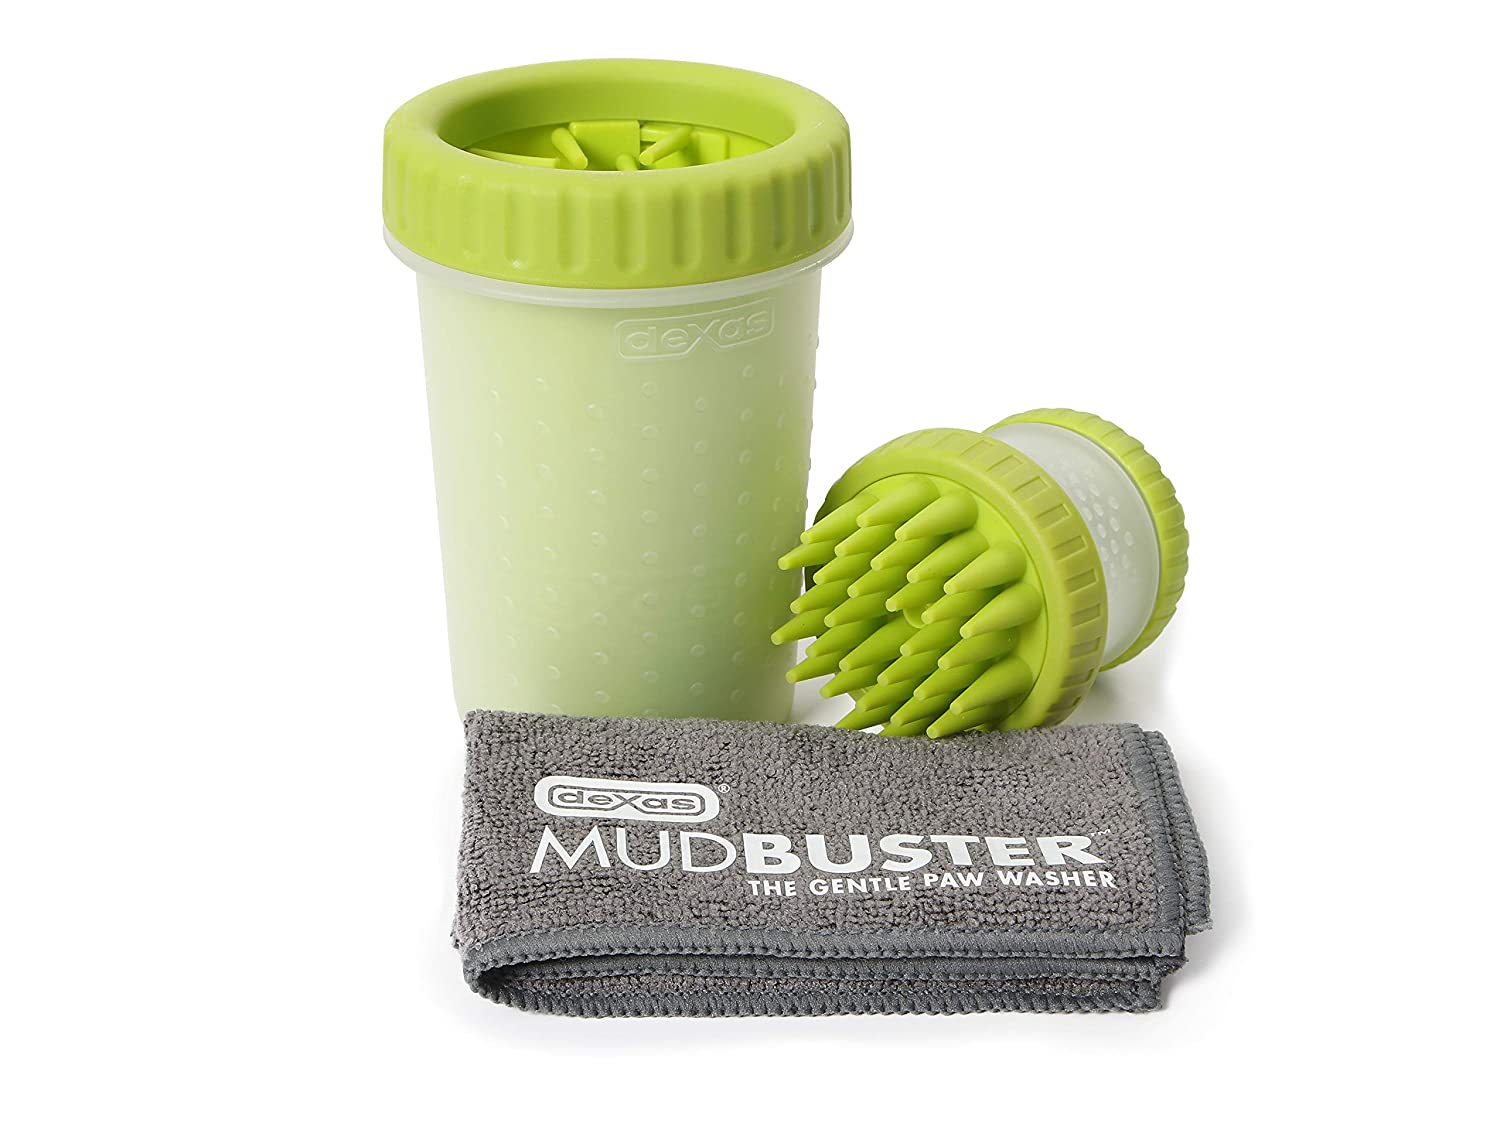 Green Medium MudBuster Set Green Medium MudBuster Set Dexas PW710730383Q Medium Green MudBuster, ScrubBuster and Towel